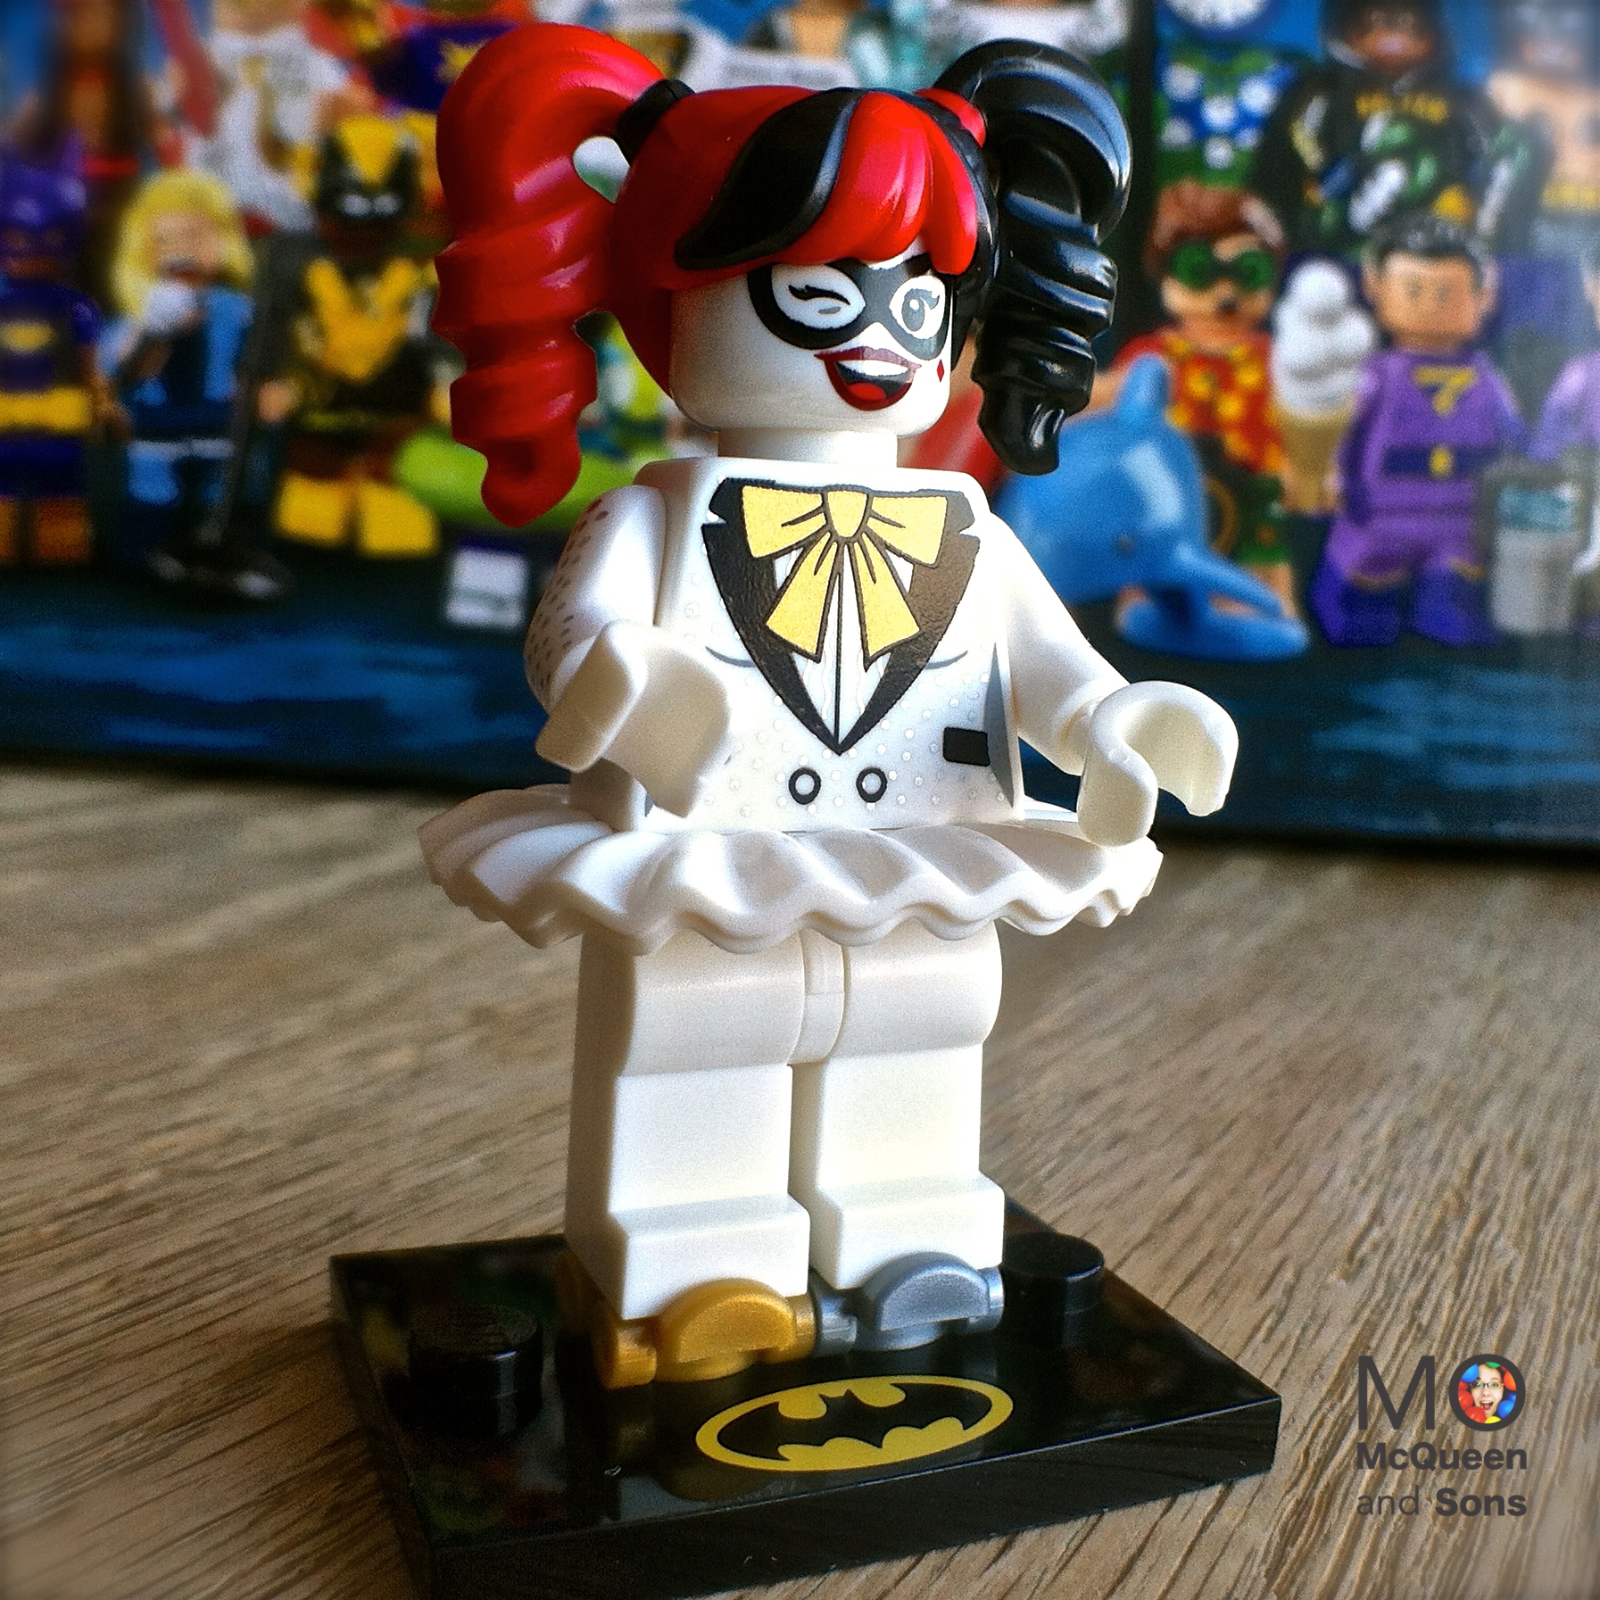 Disco Harley Quinn Factory Sealed New Lego Batman Movie series 2 71020